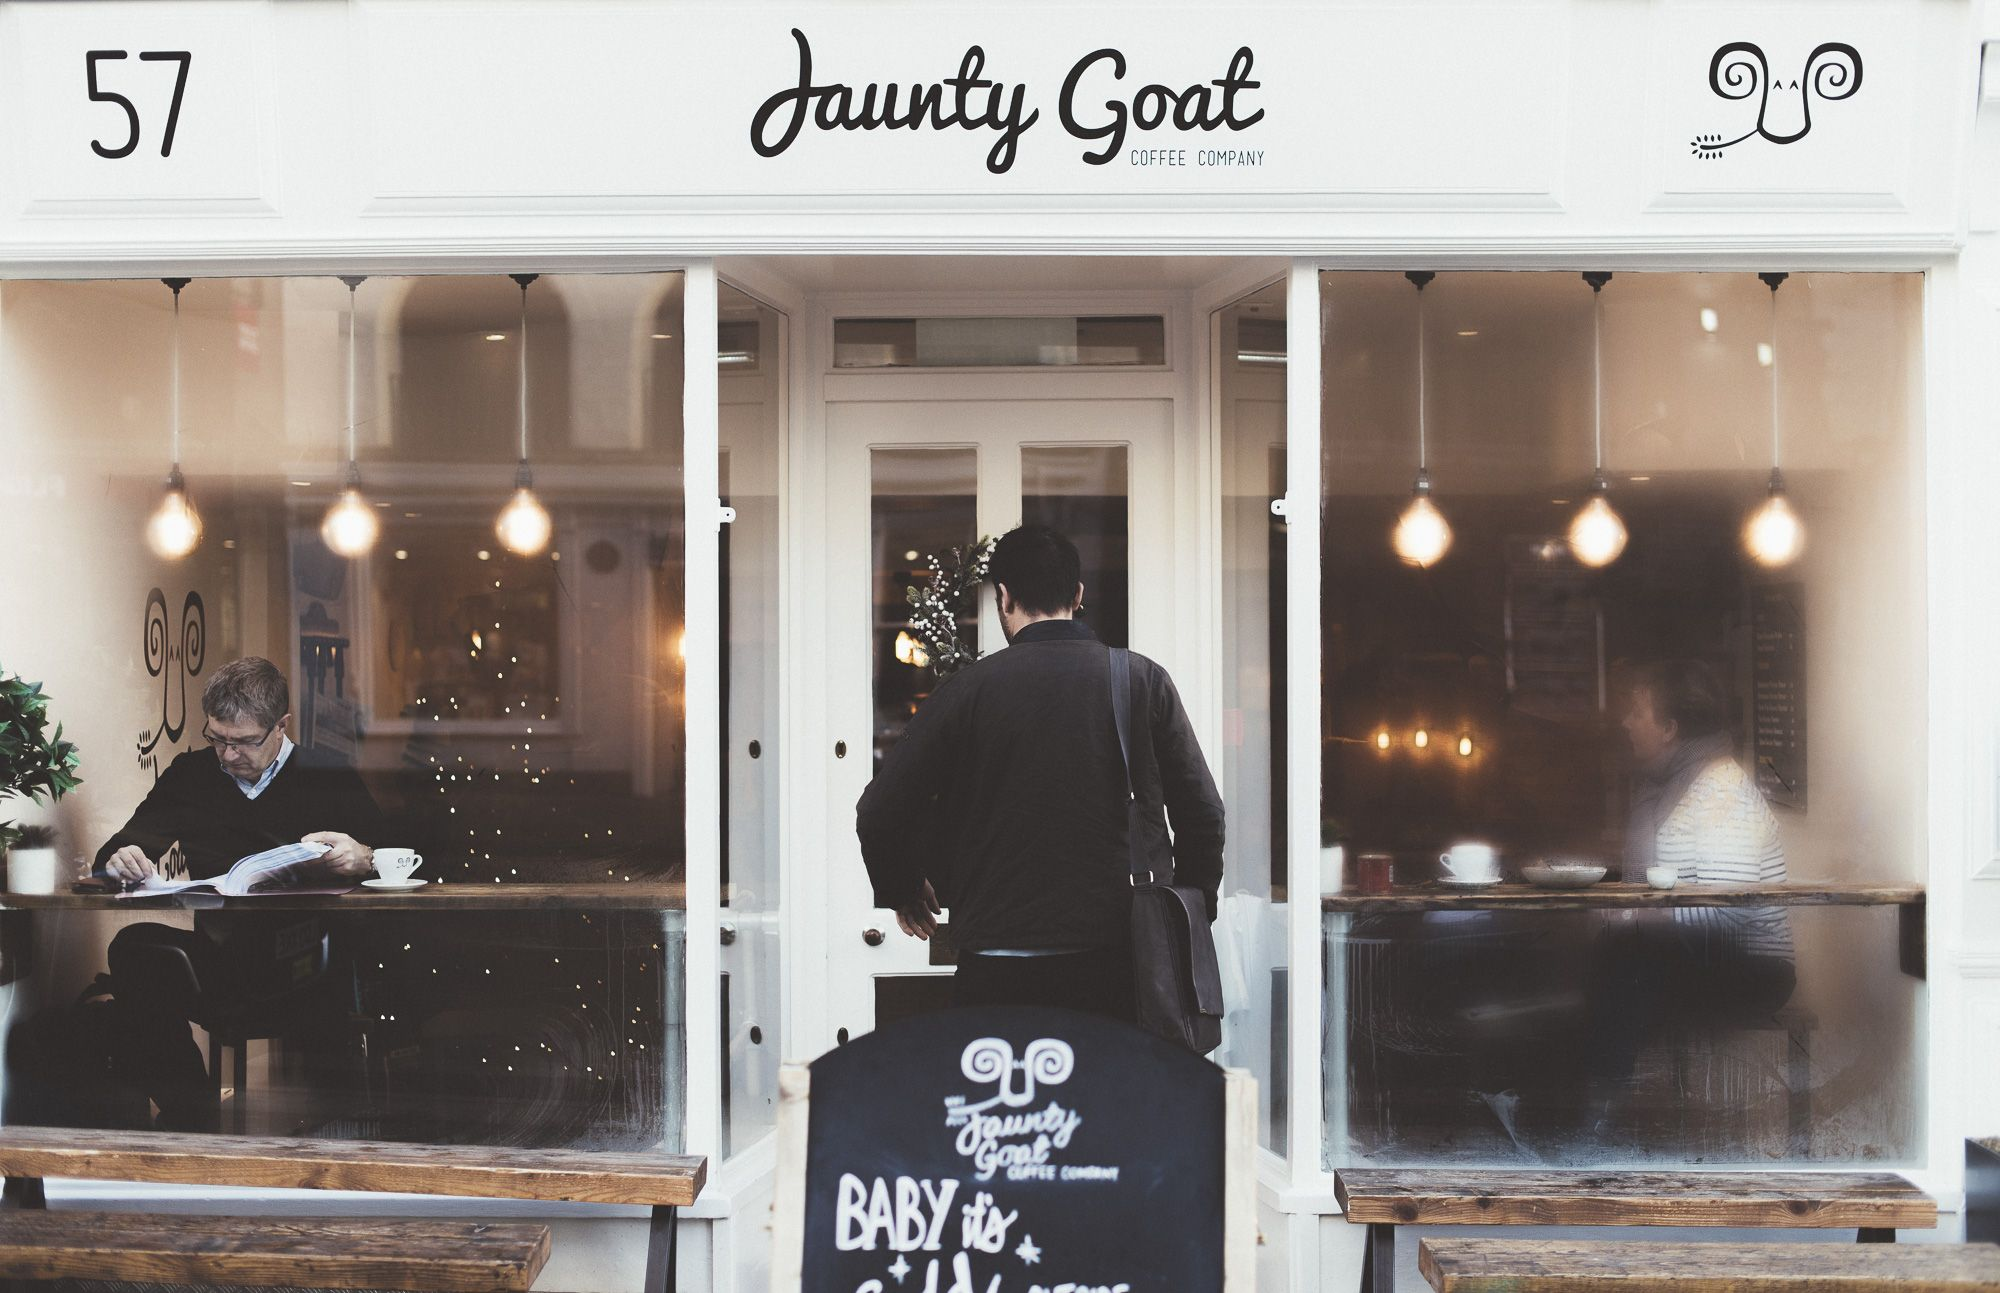 Photo of man entering Jaunty Goat Coffee Shop